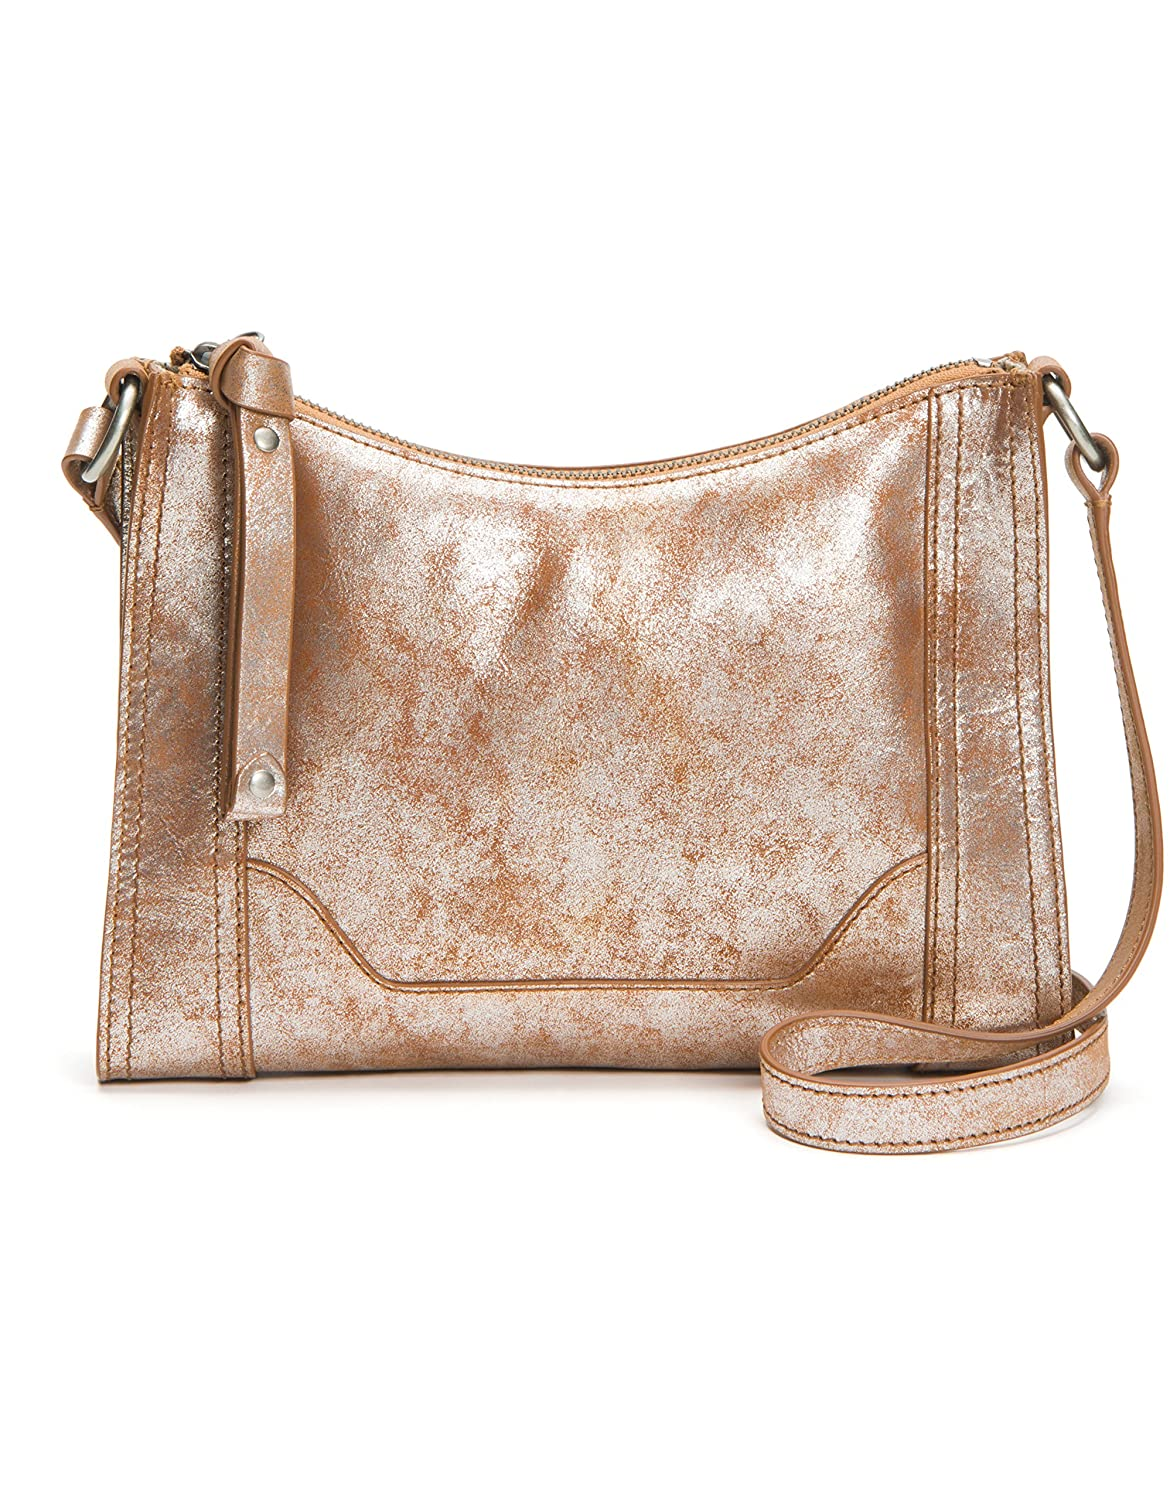 Frye Melissa Zip Leather Crossbody Bag Beige DB770